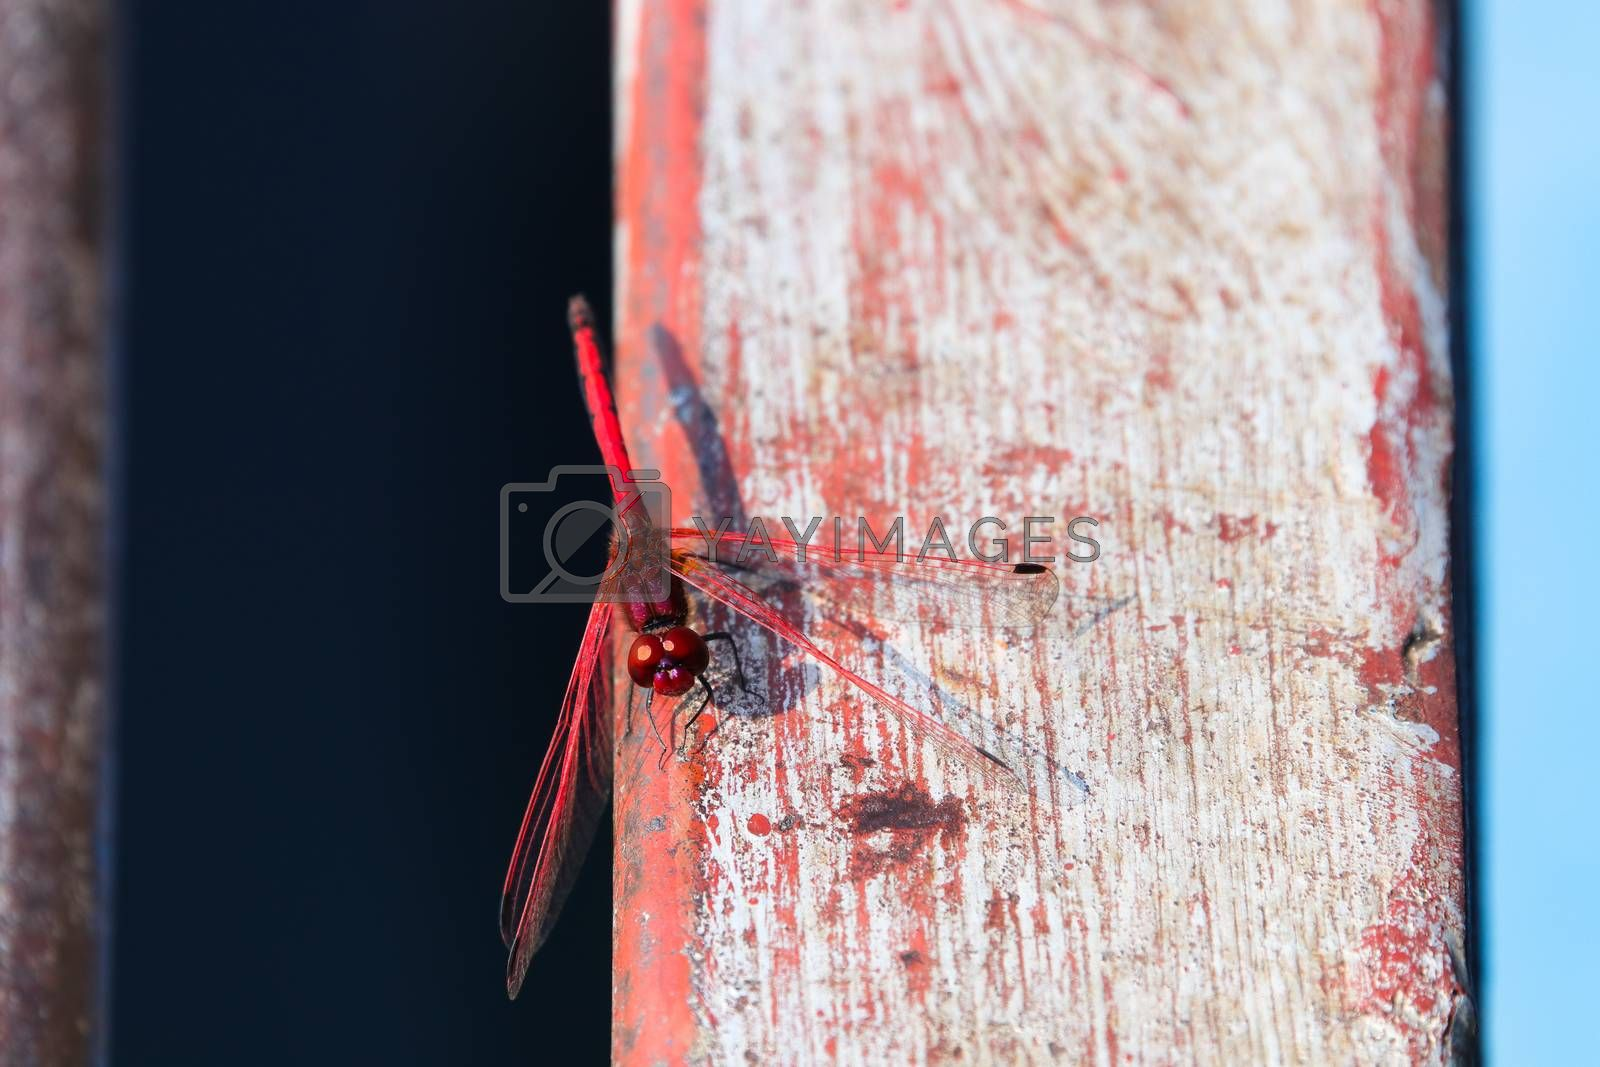 A vibrant red-veined dropwing dragonfly (Trithemis arteriosa) on red and white painted wood beam, Groot Marico, South Africa